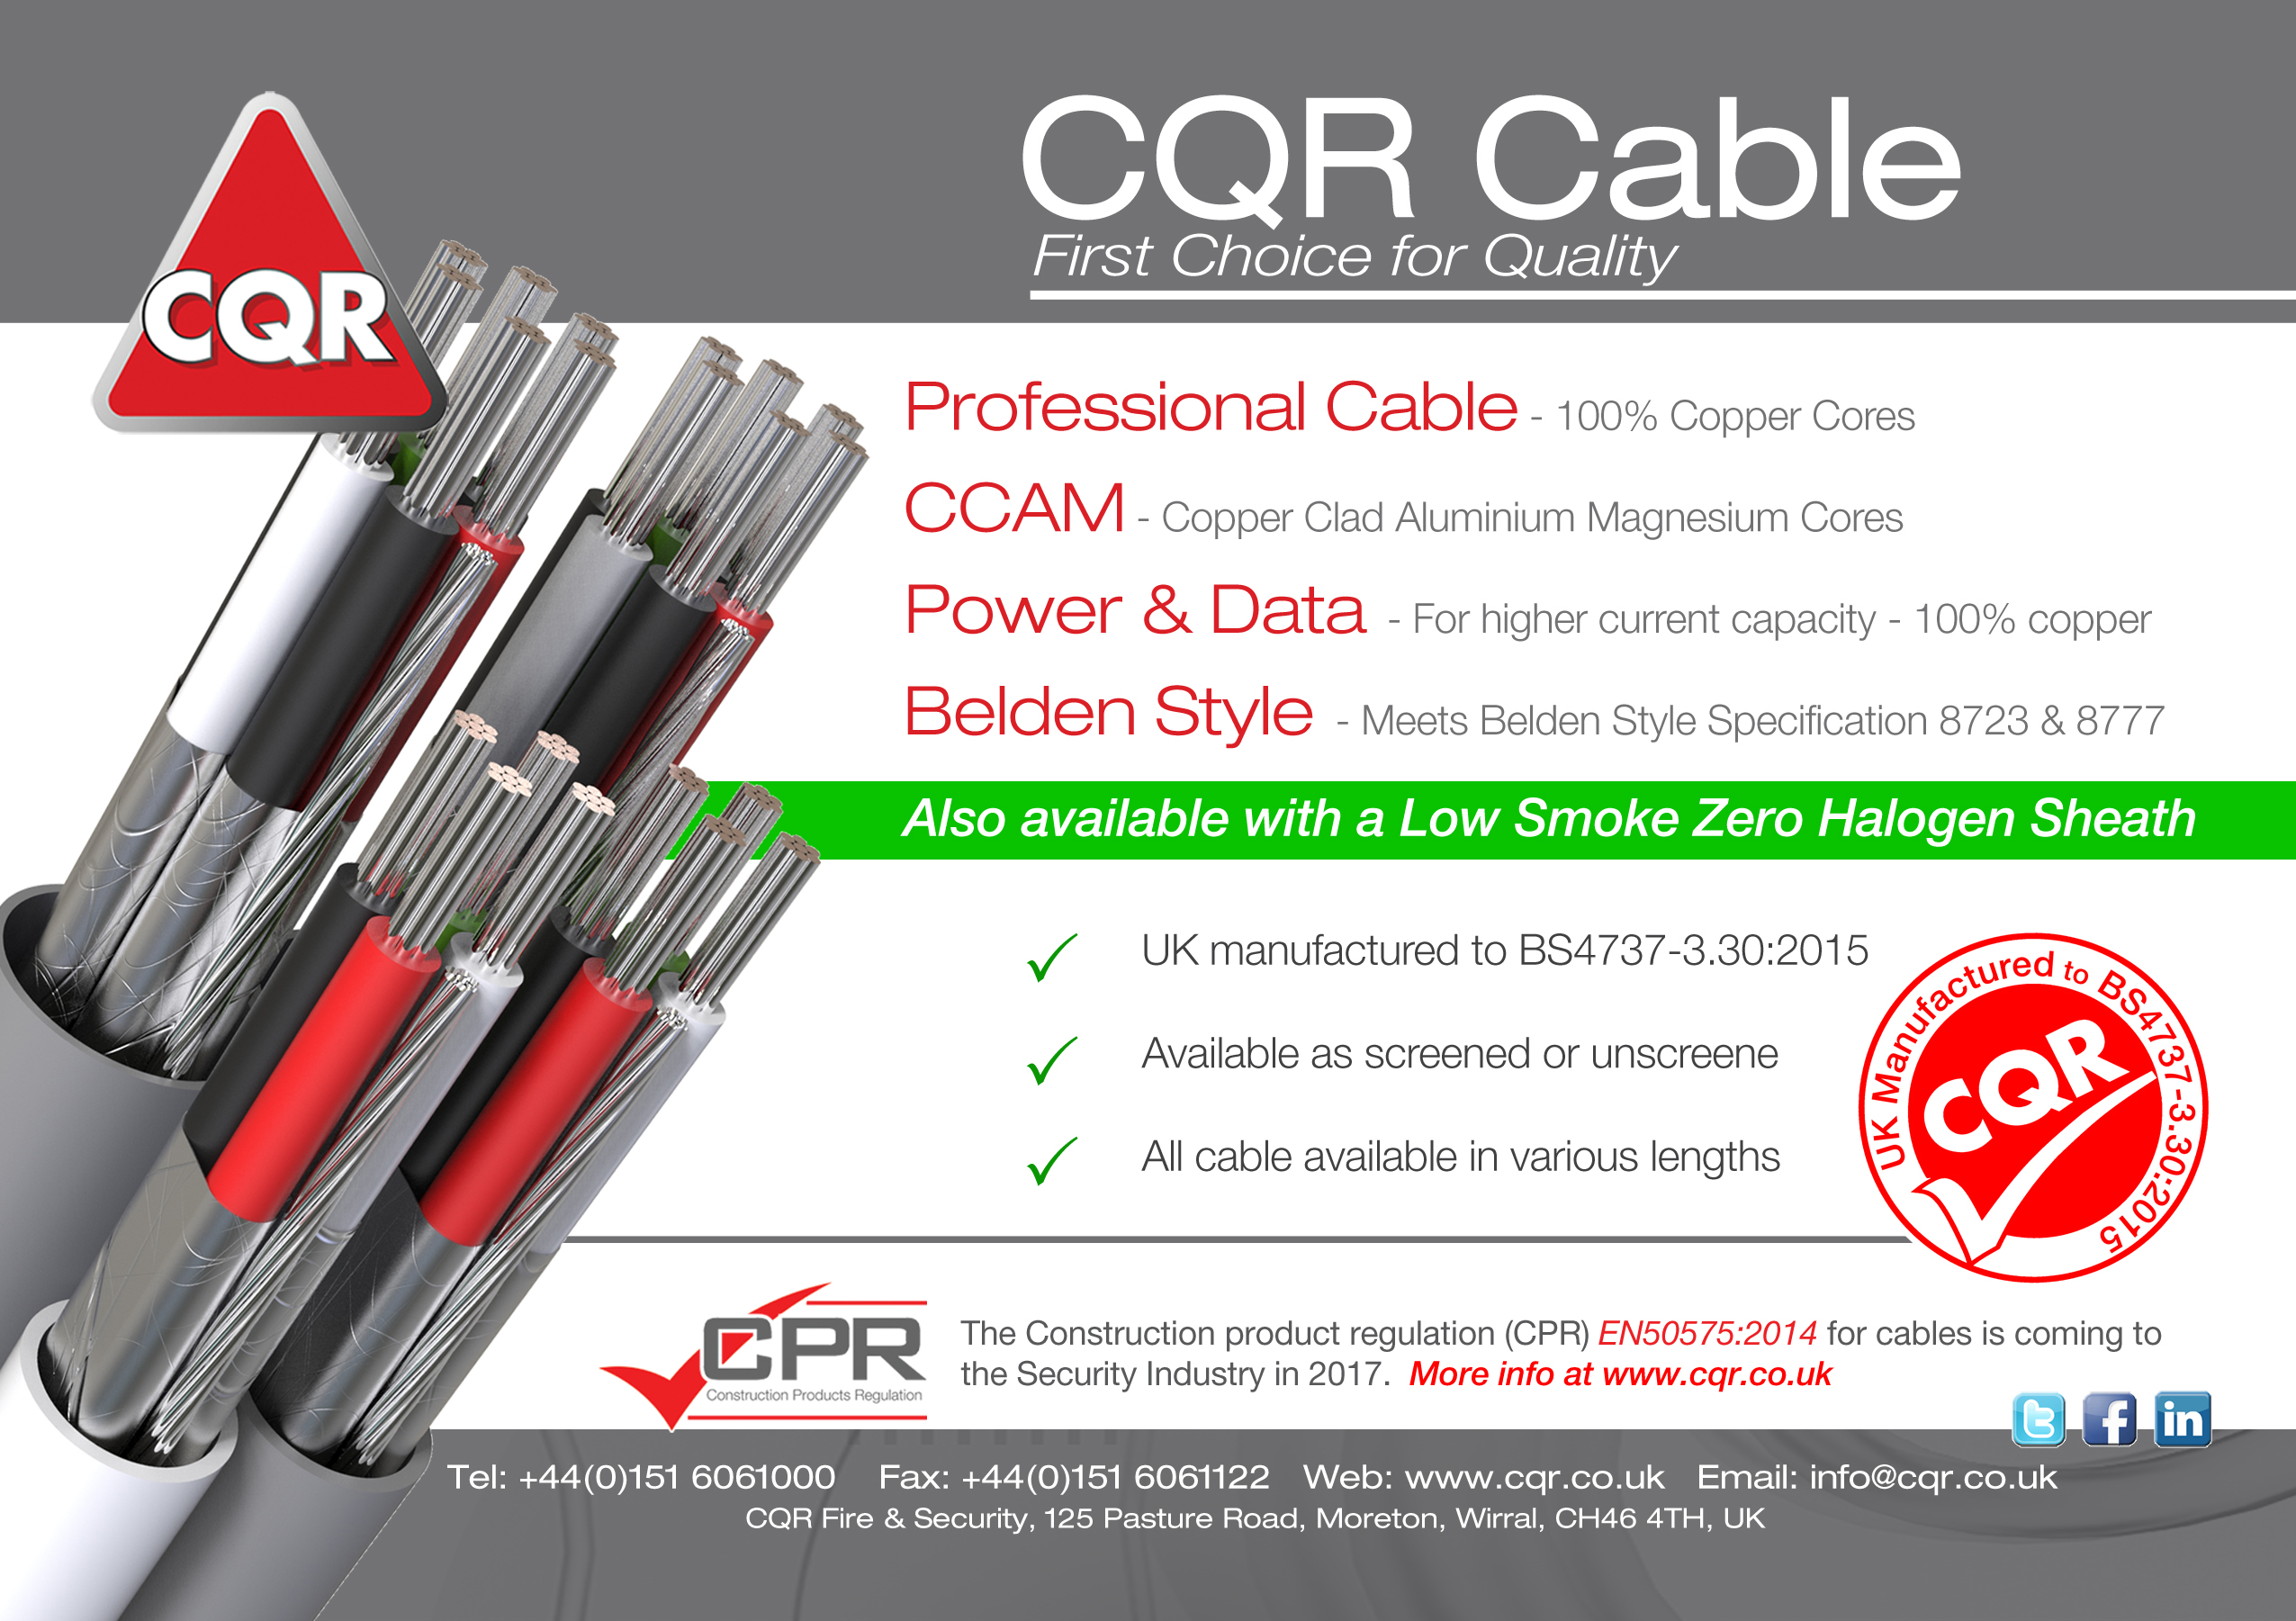 cqr-cable